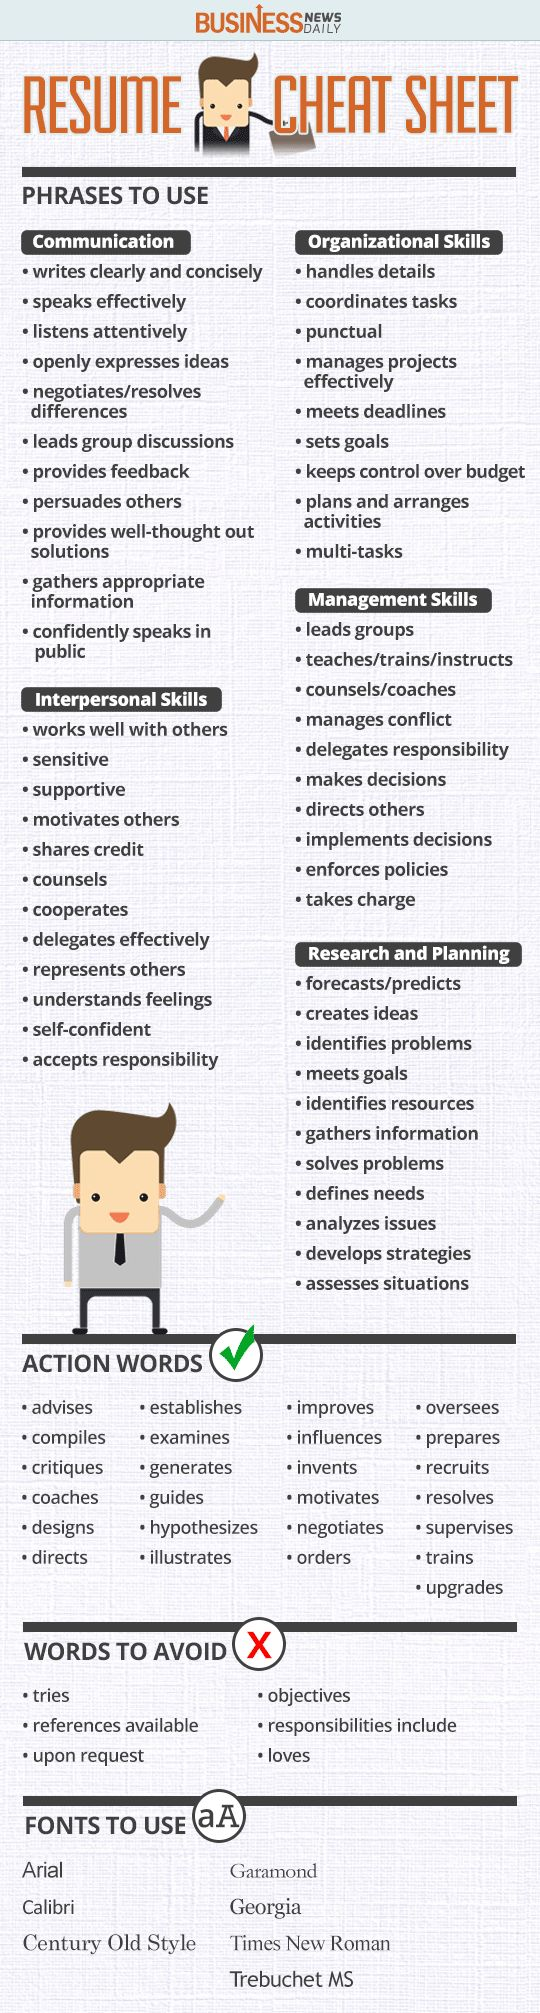 Opposenewapstandardsus  Marvellous  Ideas About Resume On Pinterest  Cv Format Resume Cv And  With Glamorous Resume Cheat Sheet Infographic Andrews Almost Done With A Complete Unit On Employment Which With Agreeable Samples Of Customer Service Resumes Also Objective For Business Resume In Addition Resume Extracurricular And Radio Personality Resume As Well As Planner Resume Additionally Sample Resume For Retail Sales From Pinterestcom With Opposenewapstandardsus  Glamorous  Ideas About Resume On Pinterest  Cv Format Resume Cv And  With Agreeable Resume Cheat Sheet Infographic Andrews Almost Done With A Complete Unit On Employment Which And Marvellous Samples Of Customer Service Resumes Also Objective For Business Resume In Addition Resume Extracurricular From Pinterestcom